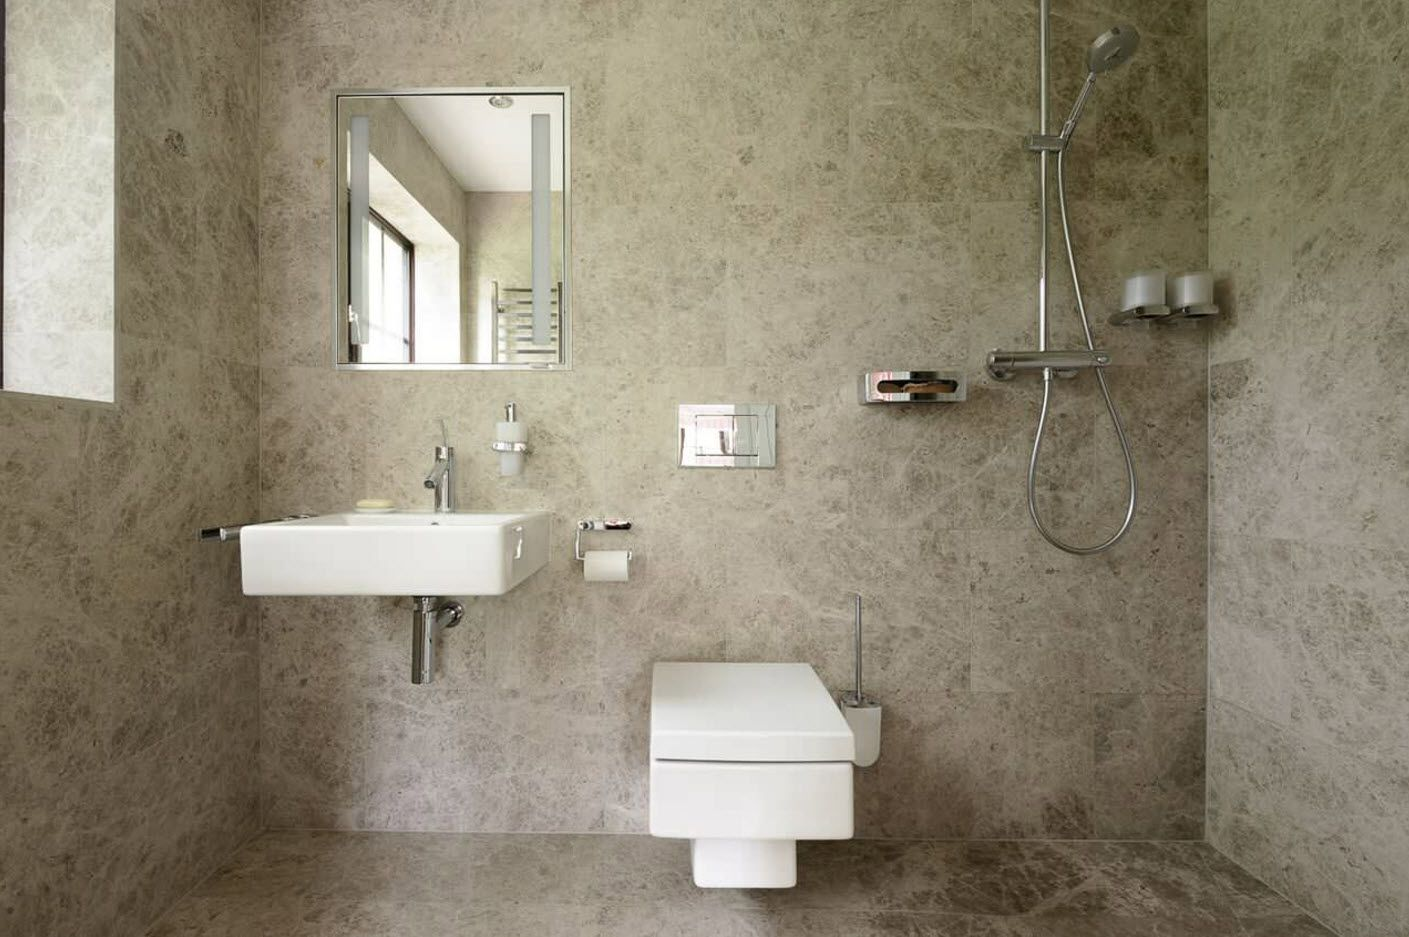 Awesome bathroom design of functional wall with all necessary accessories